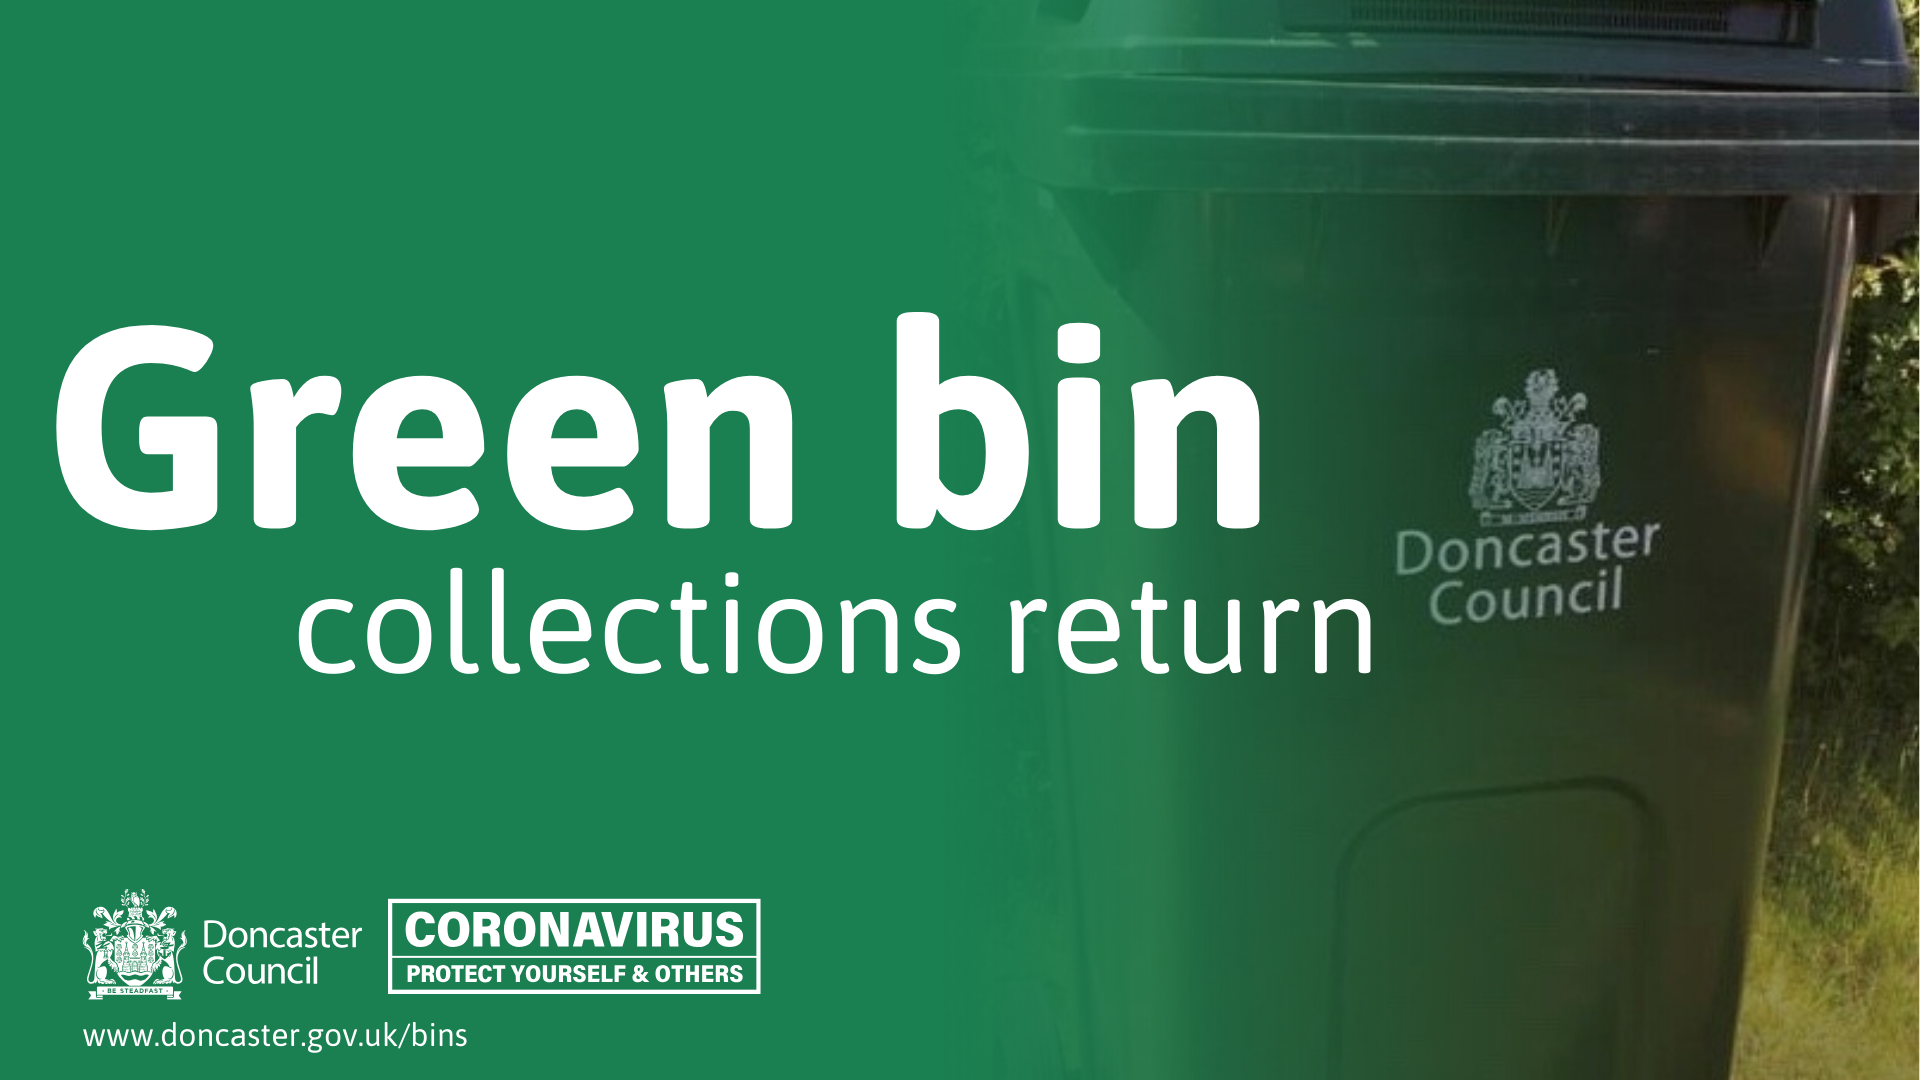 Green Bin collections are returning